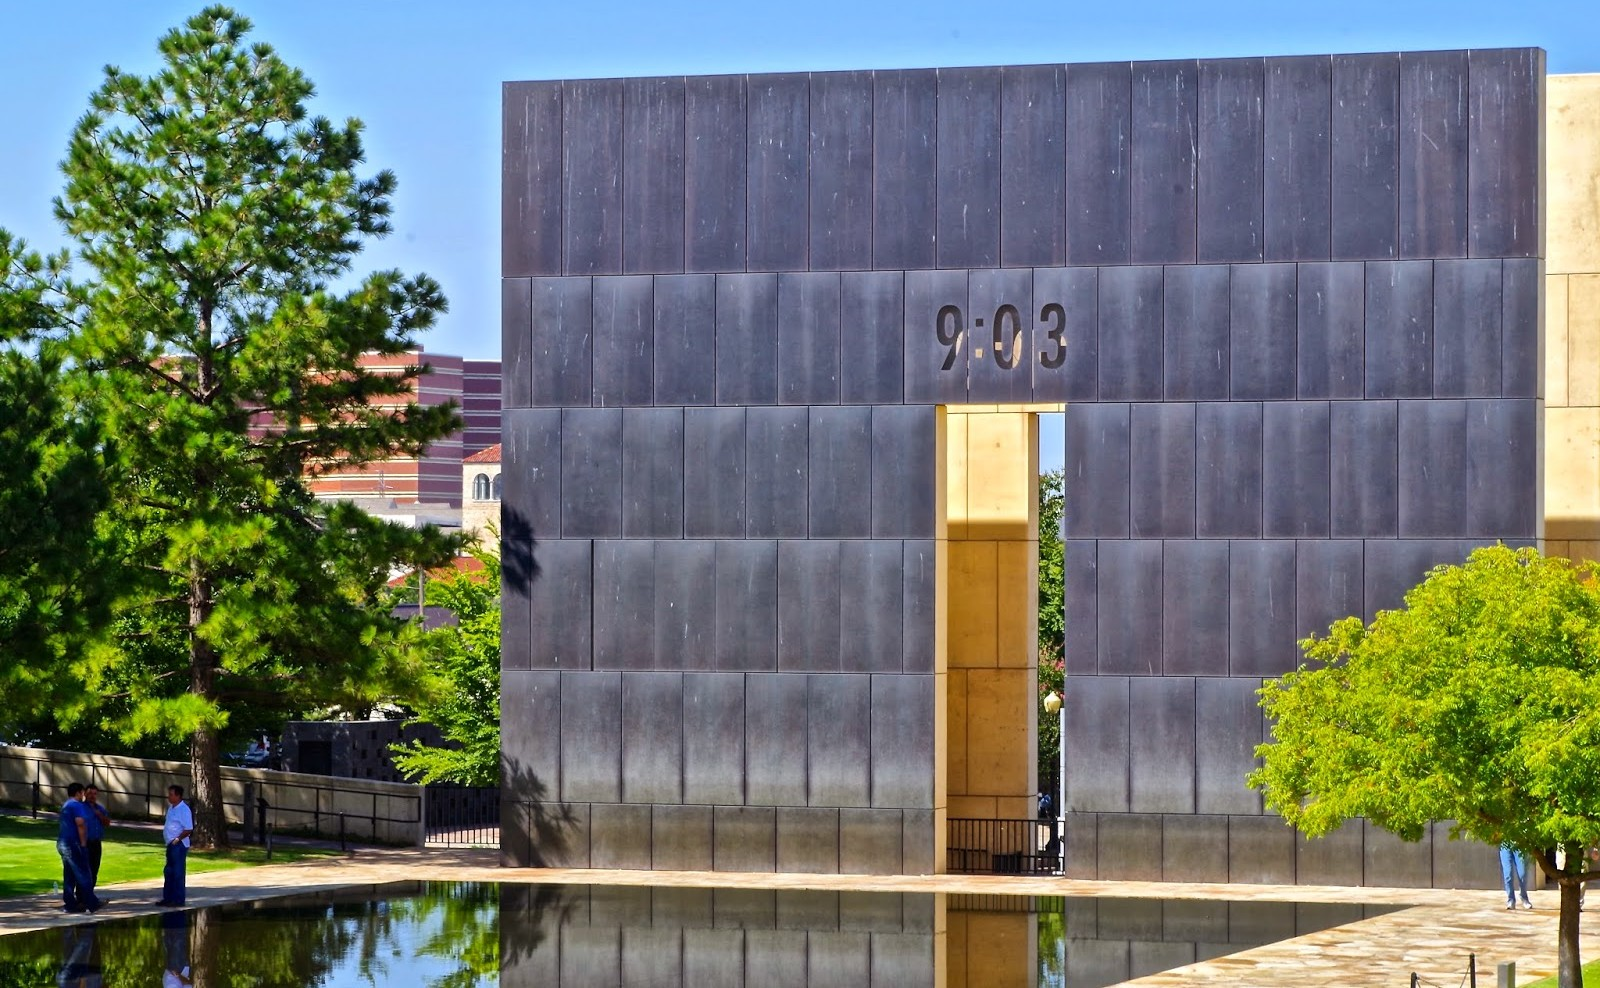 -9-03-, Oklahoma City National Memorial - 9-23-2014